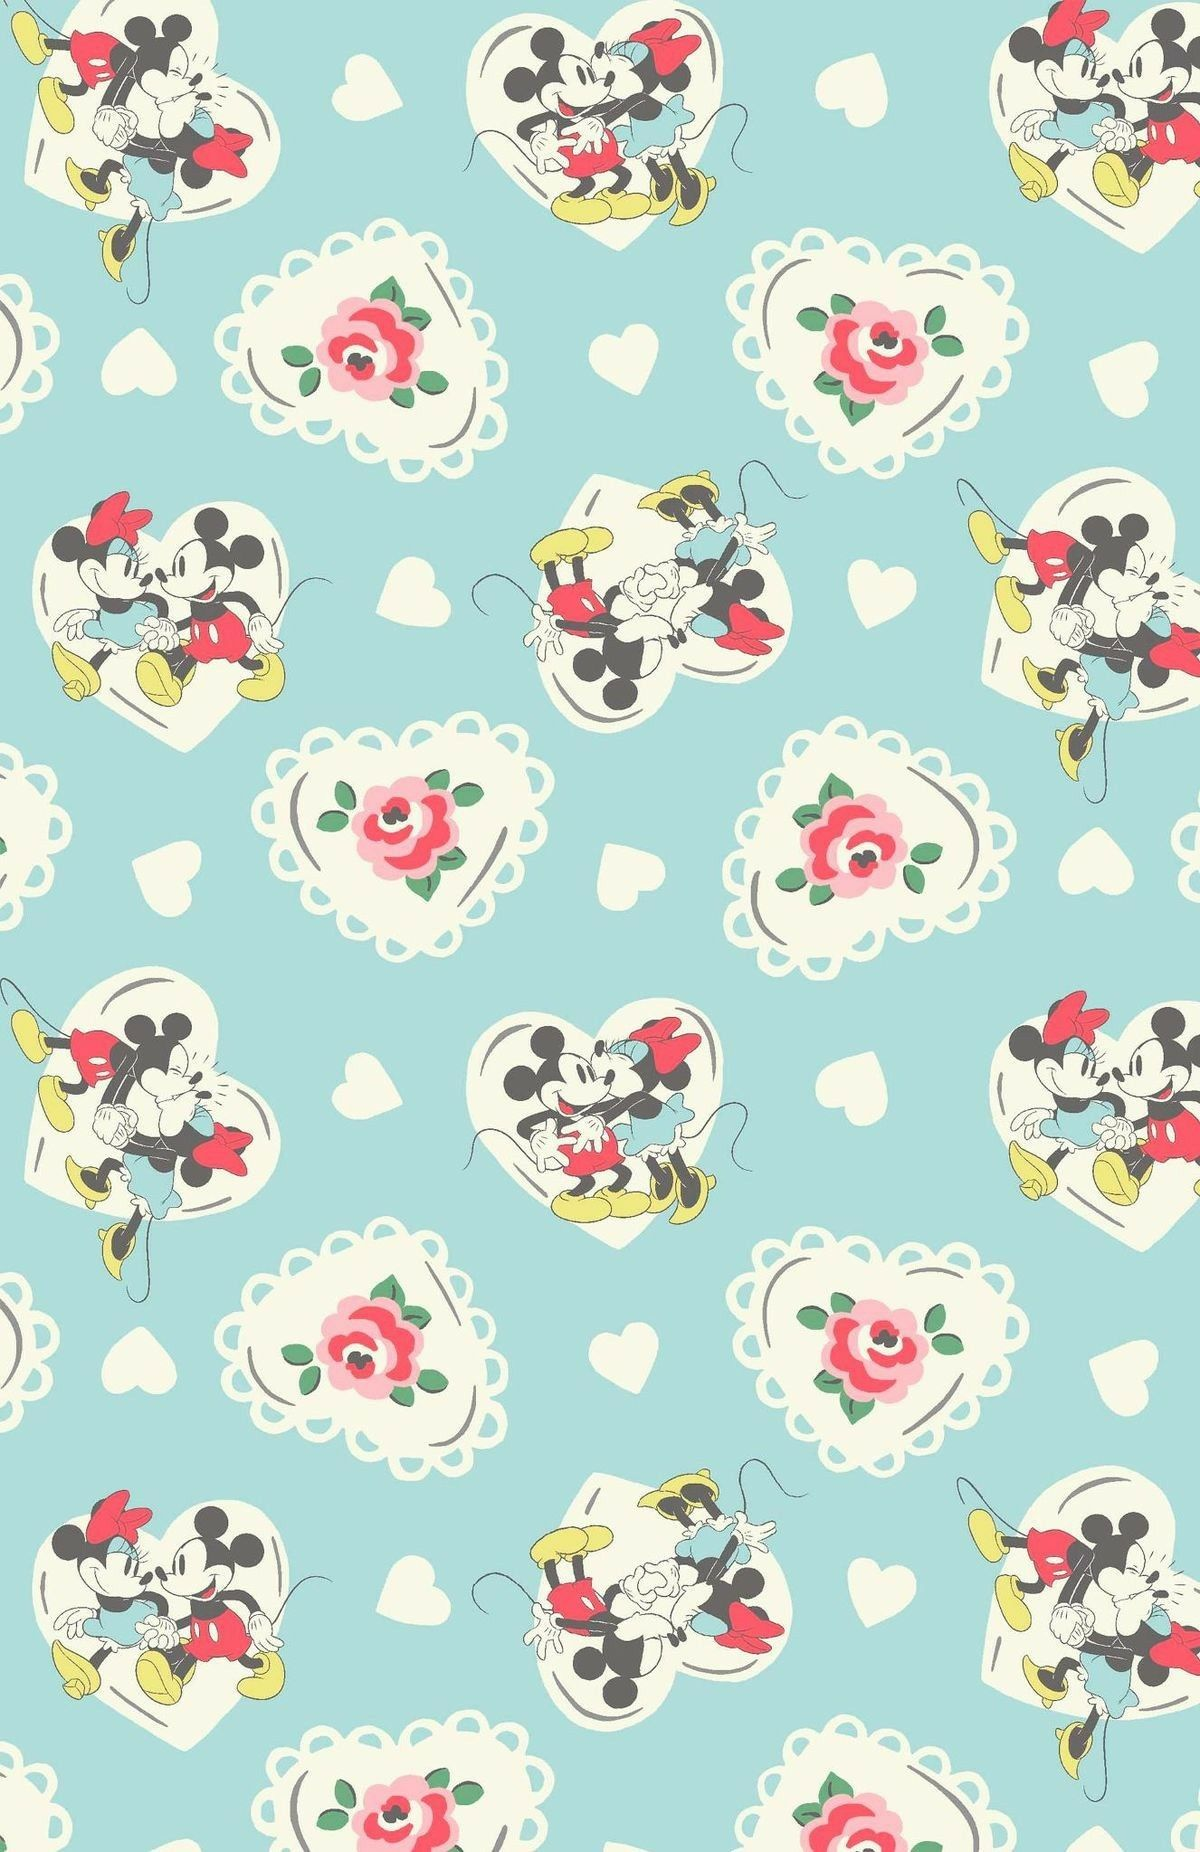 Pin by abril garcia on mickey and minnie mouse disney phone wallpaper wallpaper iphone - Minnie mouse wallpaper pinterest ...